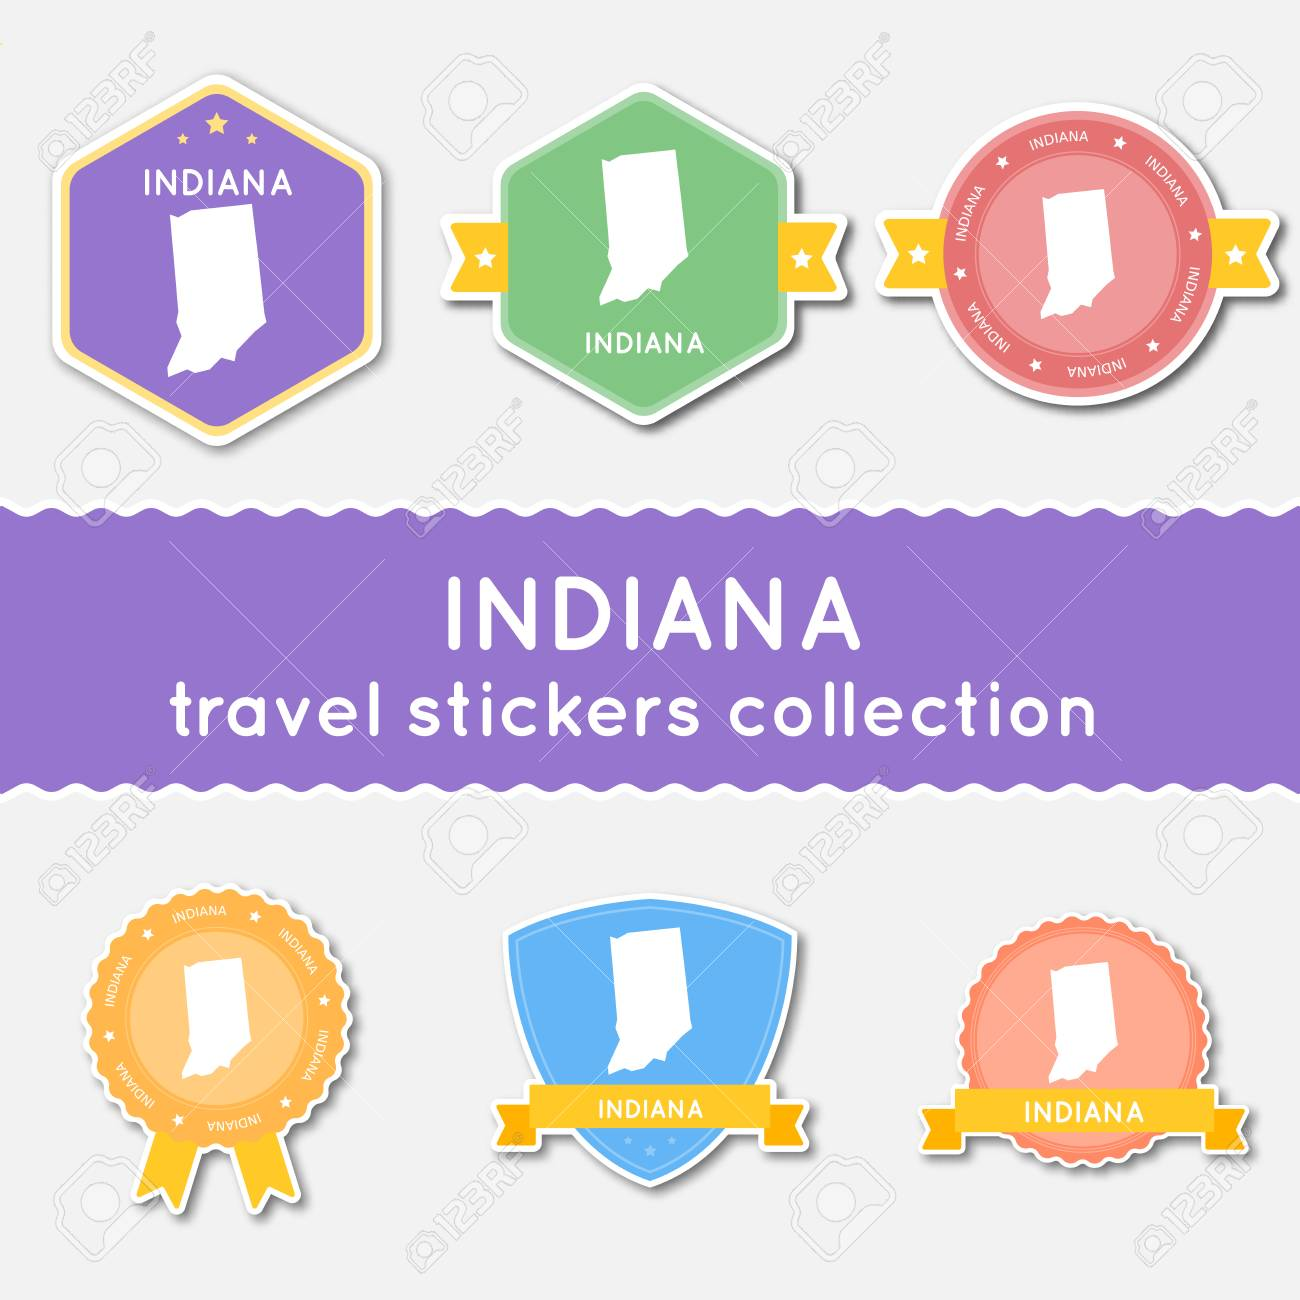 Indiana travel stickers collection. Big set of stickers with.. on fort bend county zip code map, indiana hiv, indiana farm bureau insurance, indiana southern railroad, indiana militia, indiana dot, indiana flower name, indiana furniture, indiana tourism guide, florida state reference map, indiana museums, indiana beautiful places, indiana highways, indiana atlas, indiana topographic maps, indiana farm land, indiana race tracks, indiana hotels,